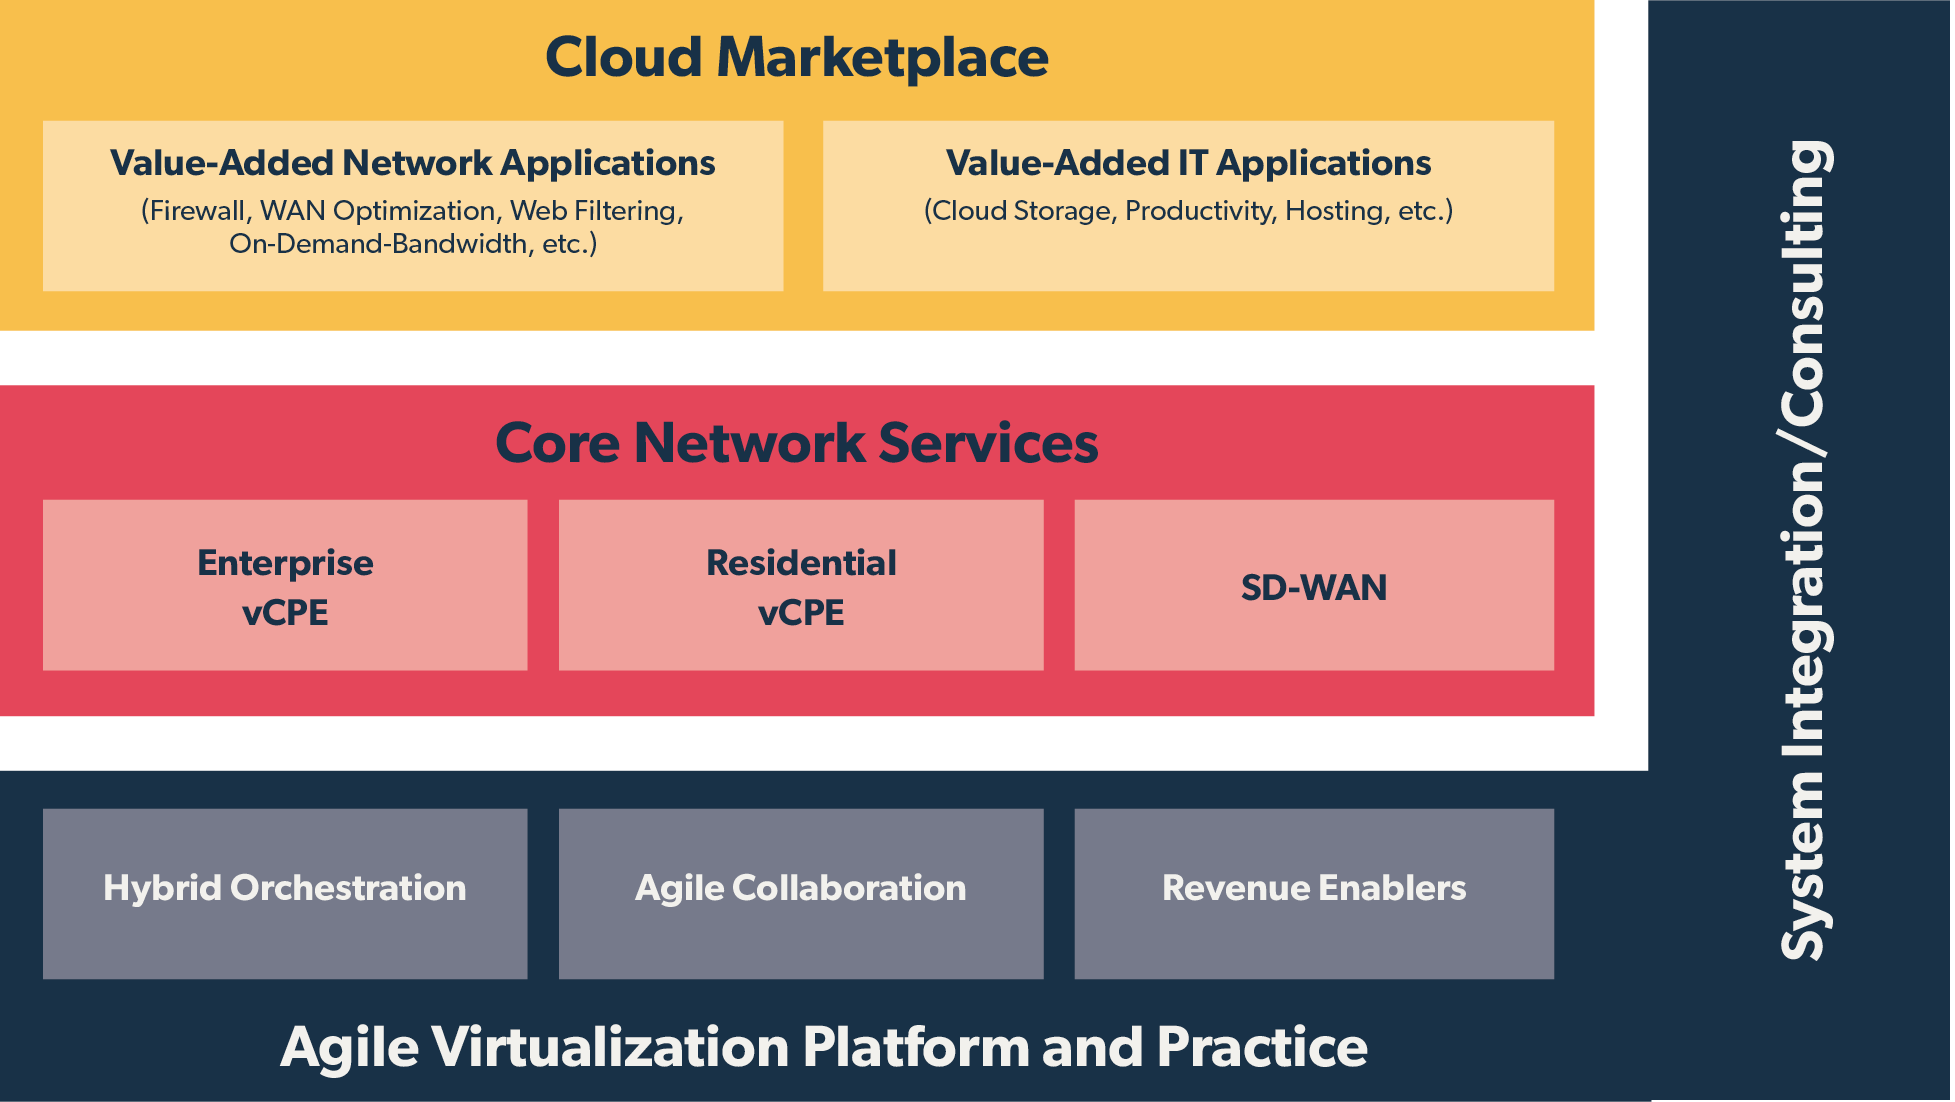 Agile Virtualization Platform and Practice